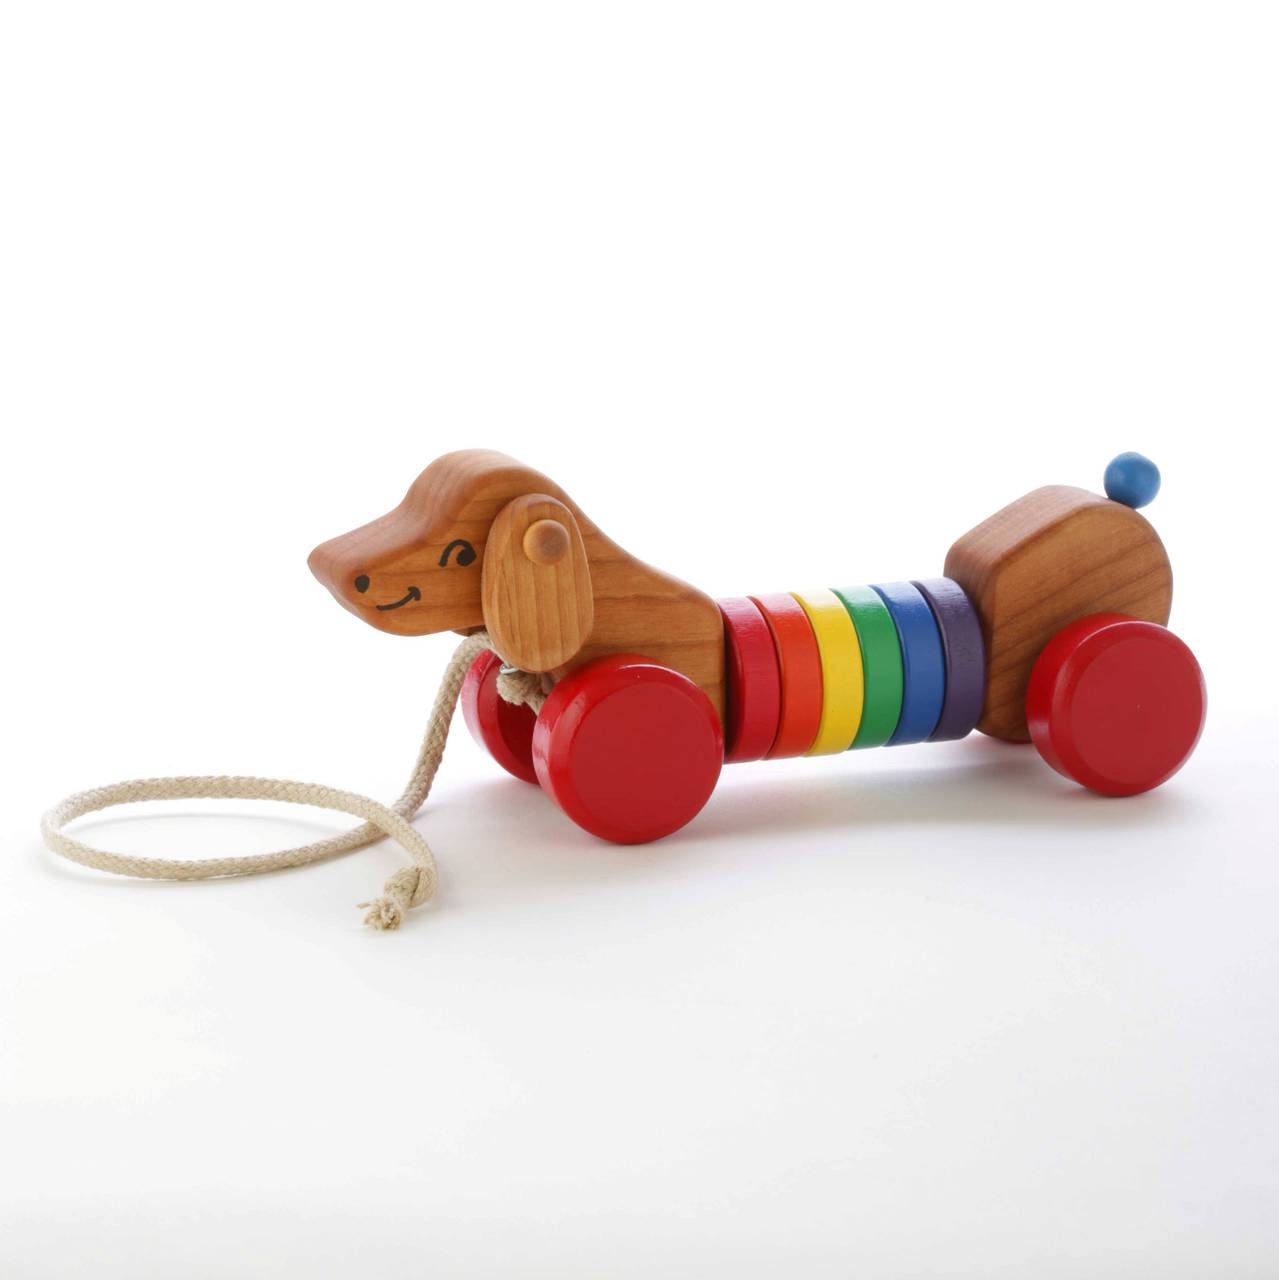 Puppy Toys For 10 And Up : Toddler toys wooden pull puppy papa dons